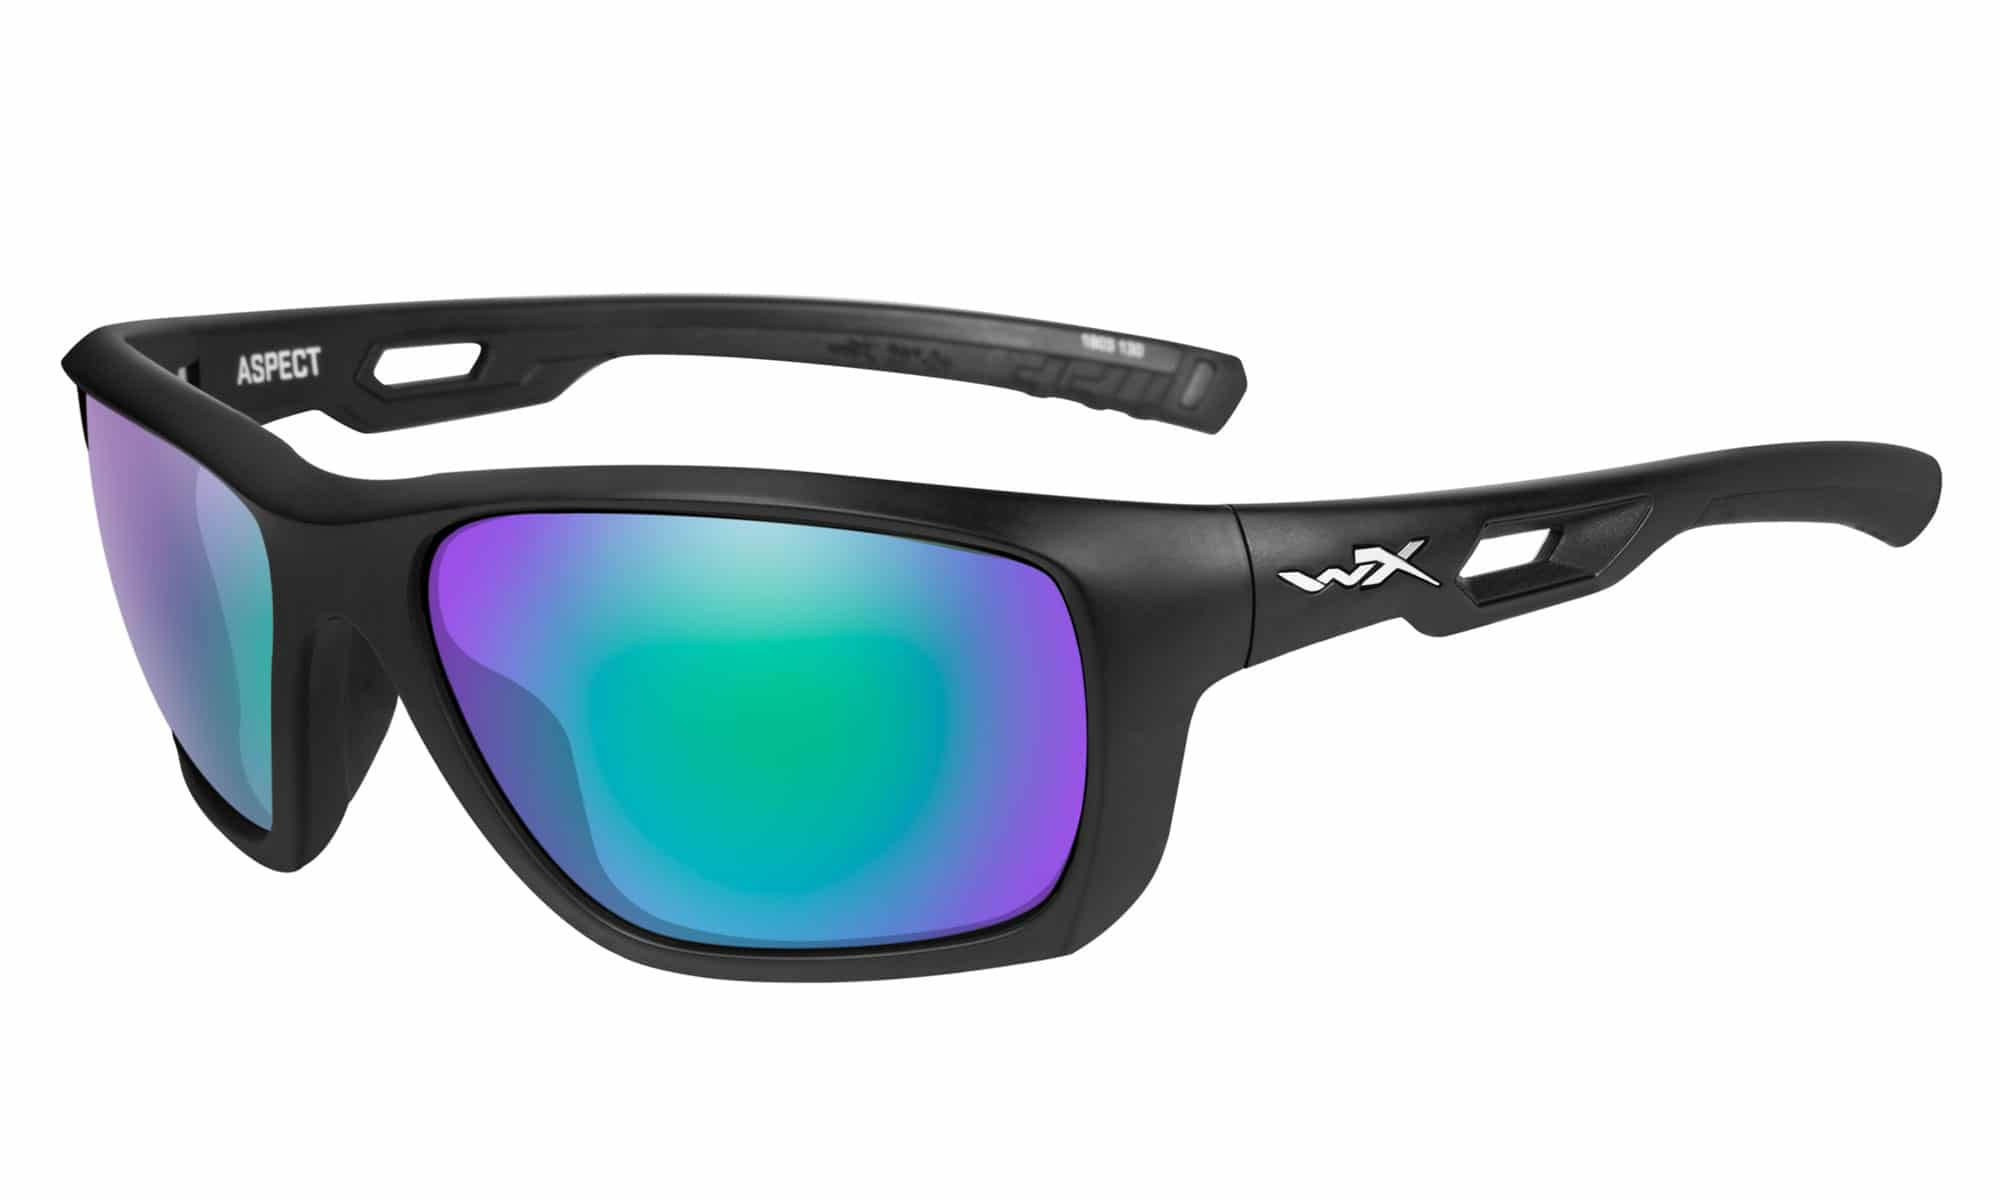 WX Aspect Sunglasses|Safety Glasses ACASP07